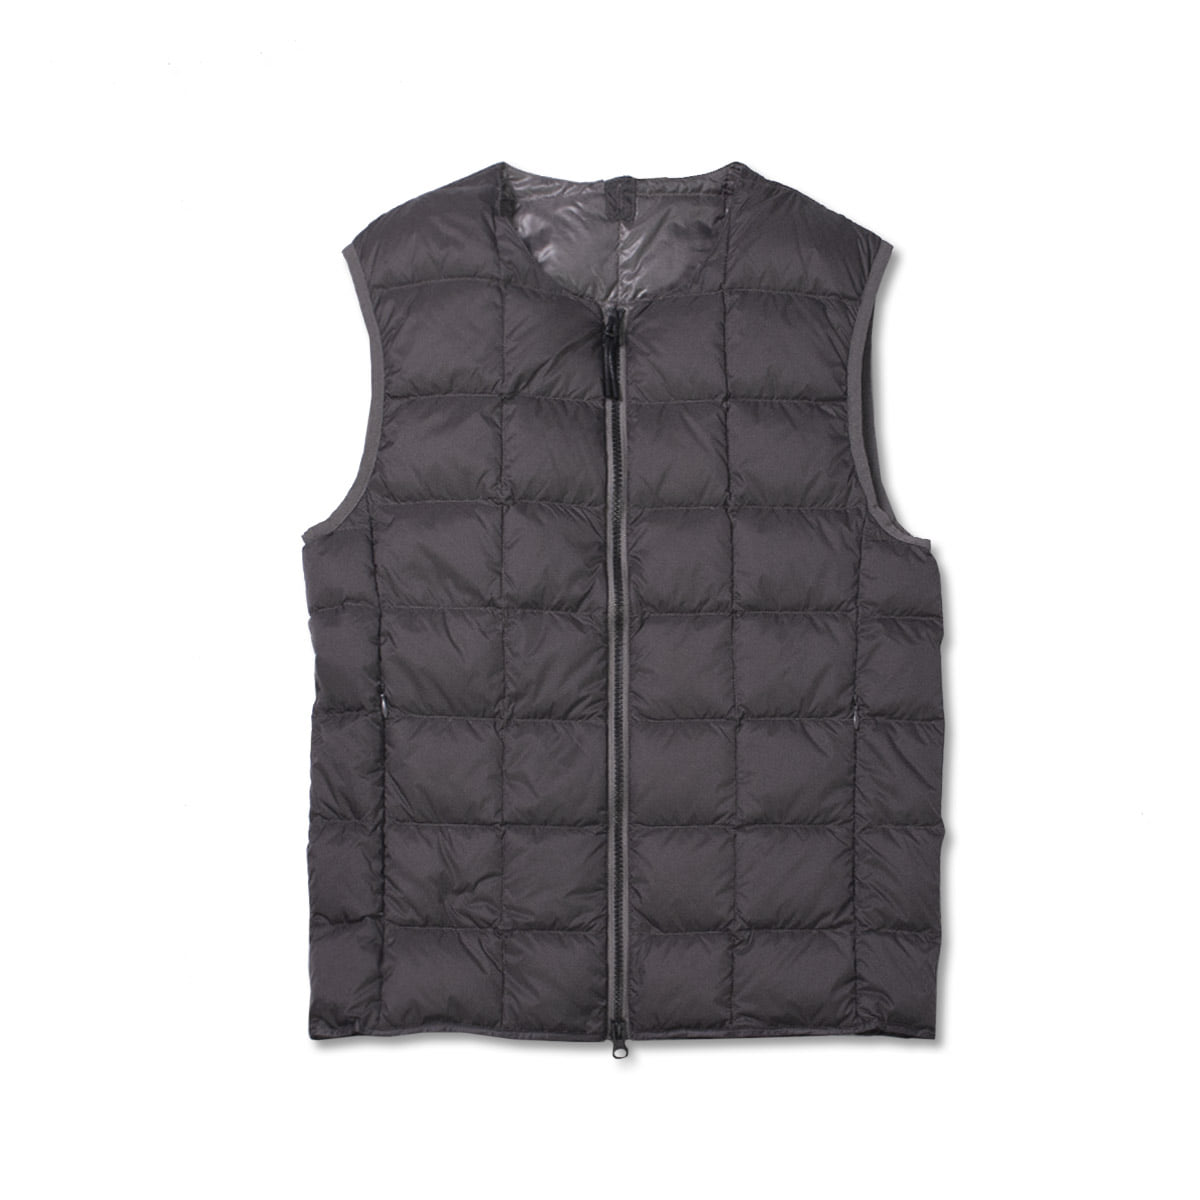 [TAION]  CREW NECK W ZIP DOWN VEST (TAI0N-005) 'GRAY'